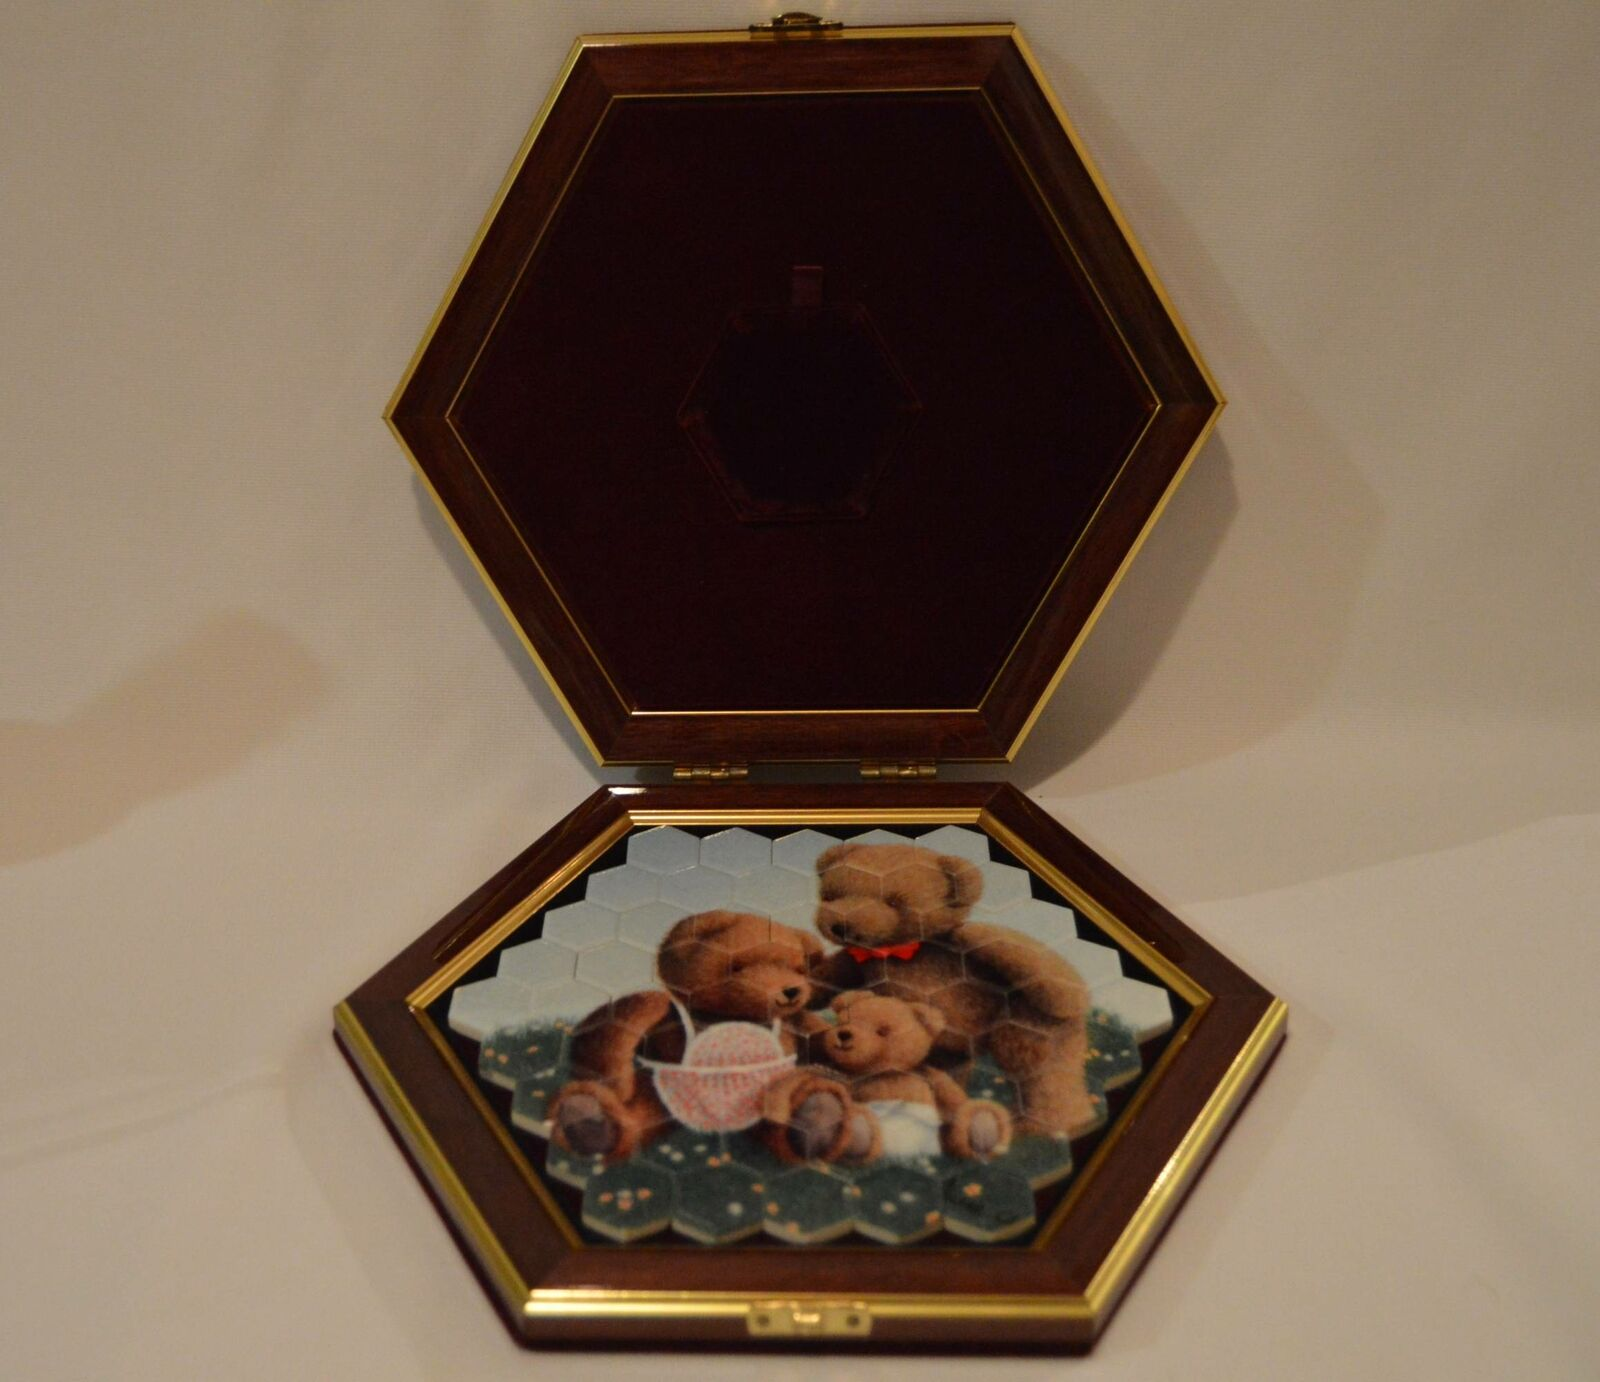 Unique Hexagonal Teddy Bear Mosaic Puzzle In Case From The Porcelain Company